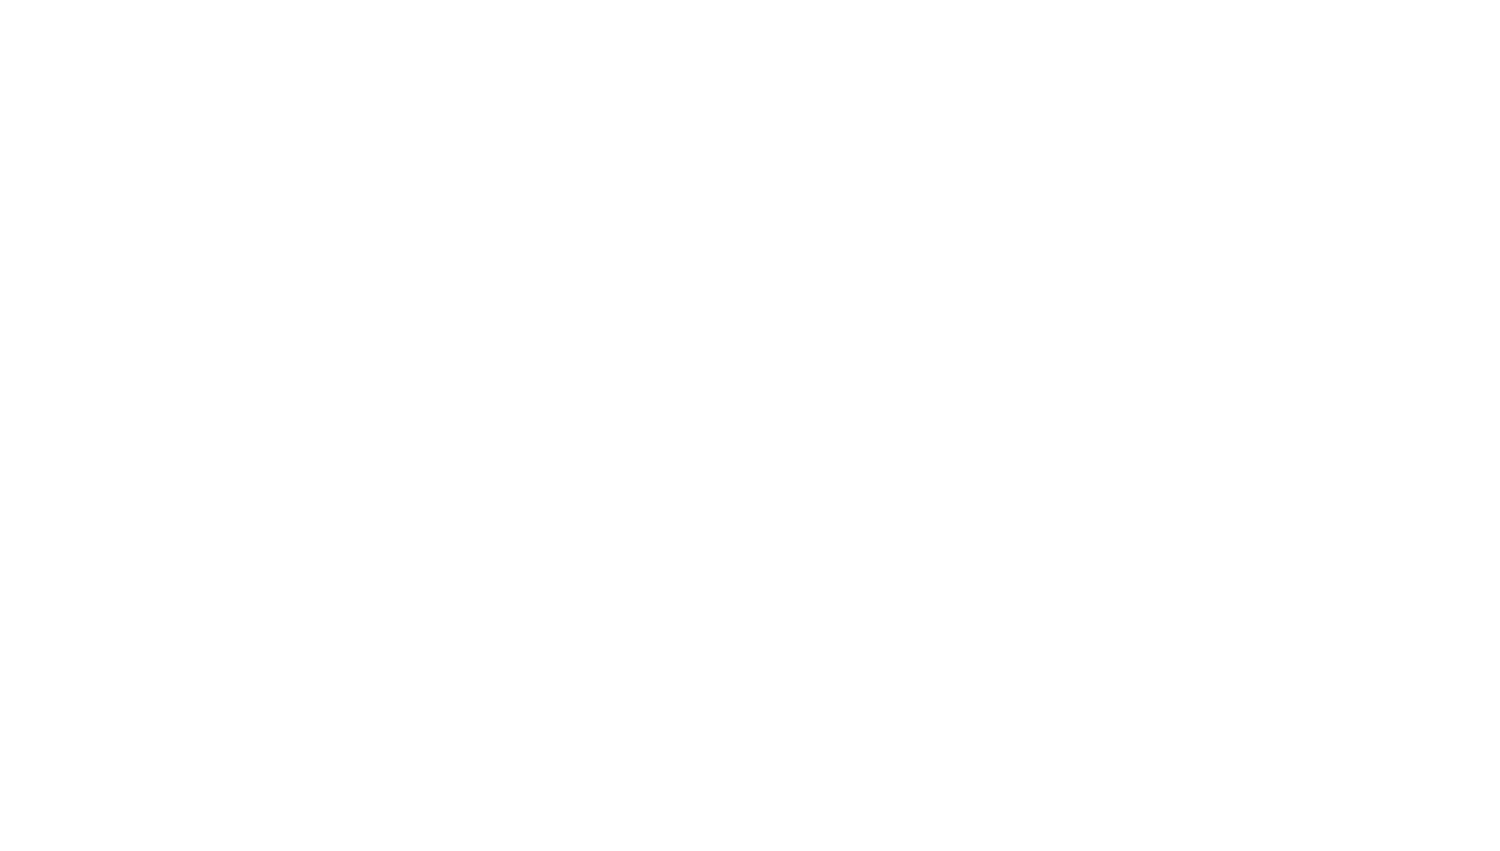 Blue Water Highway